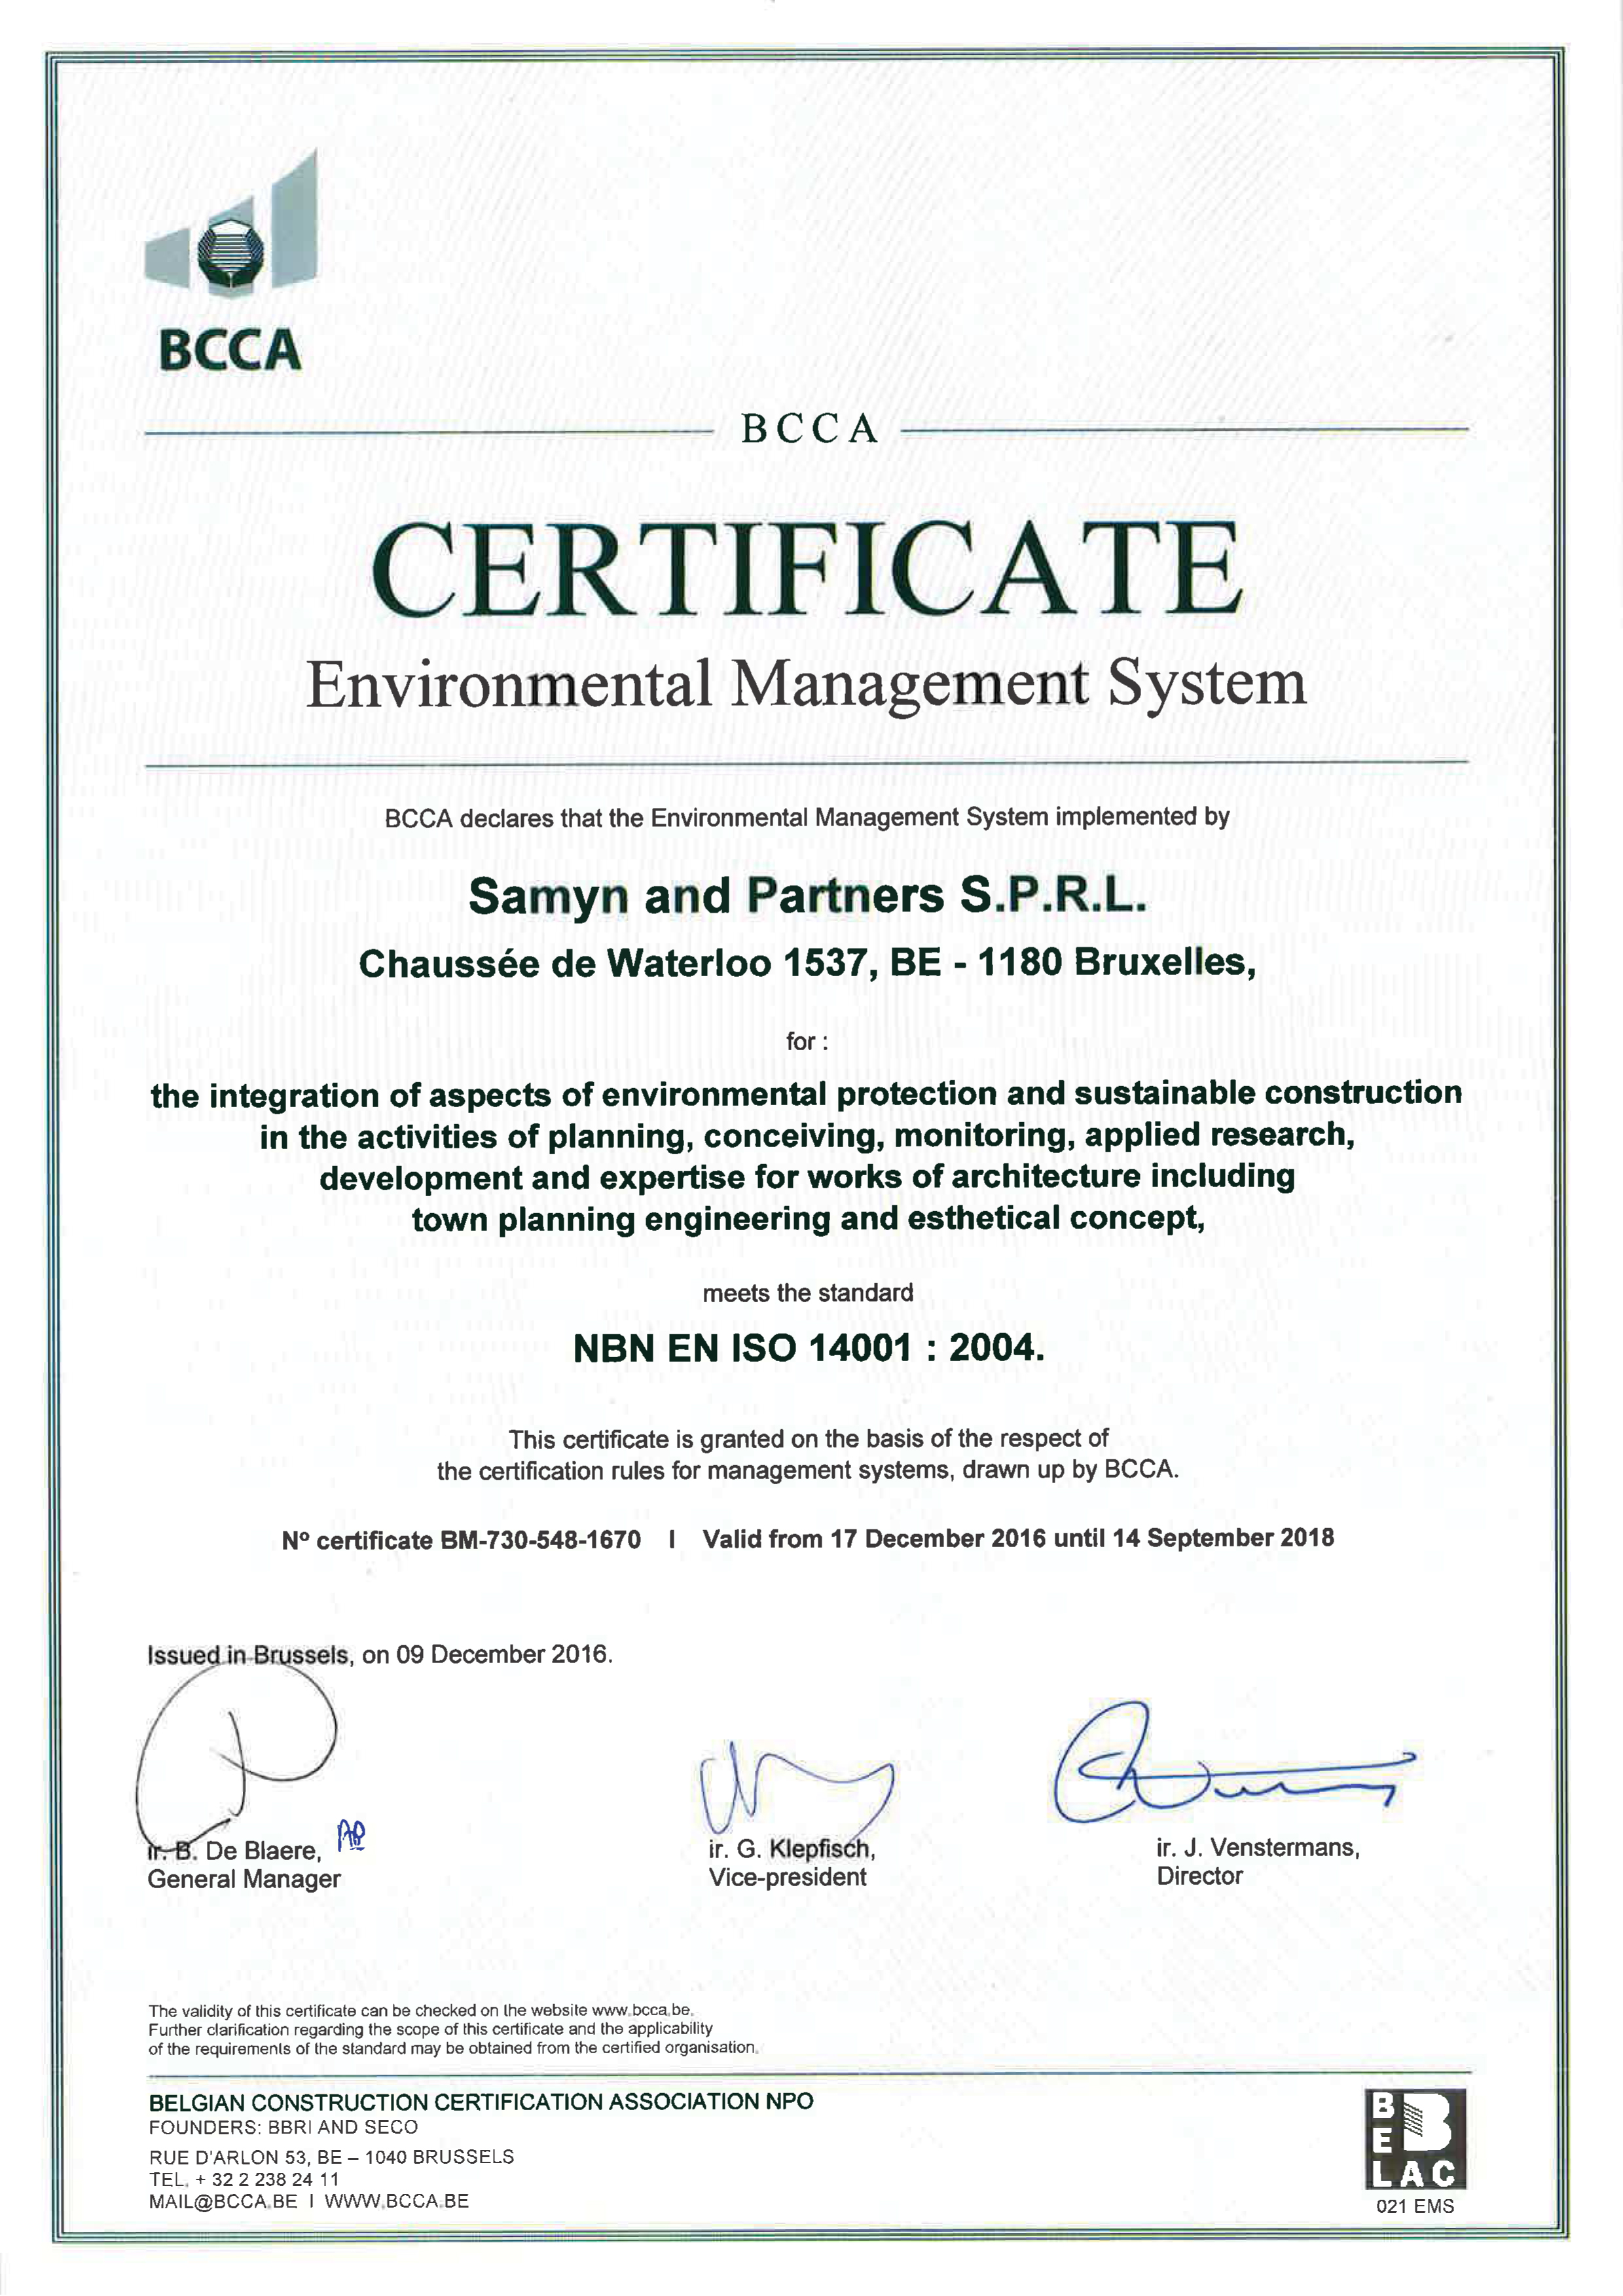 Certification Samyn And Partners